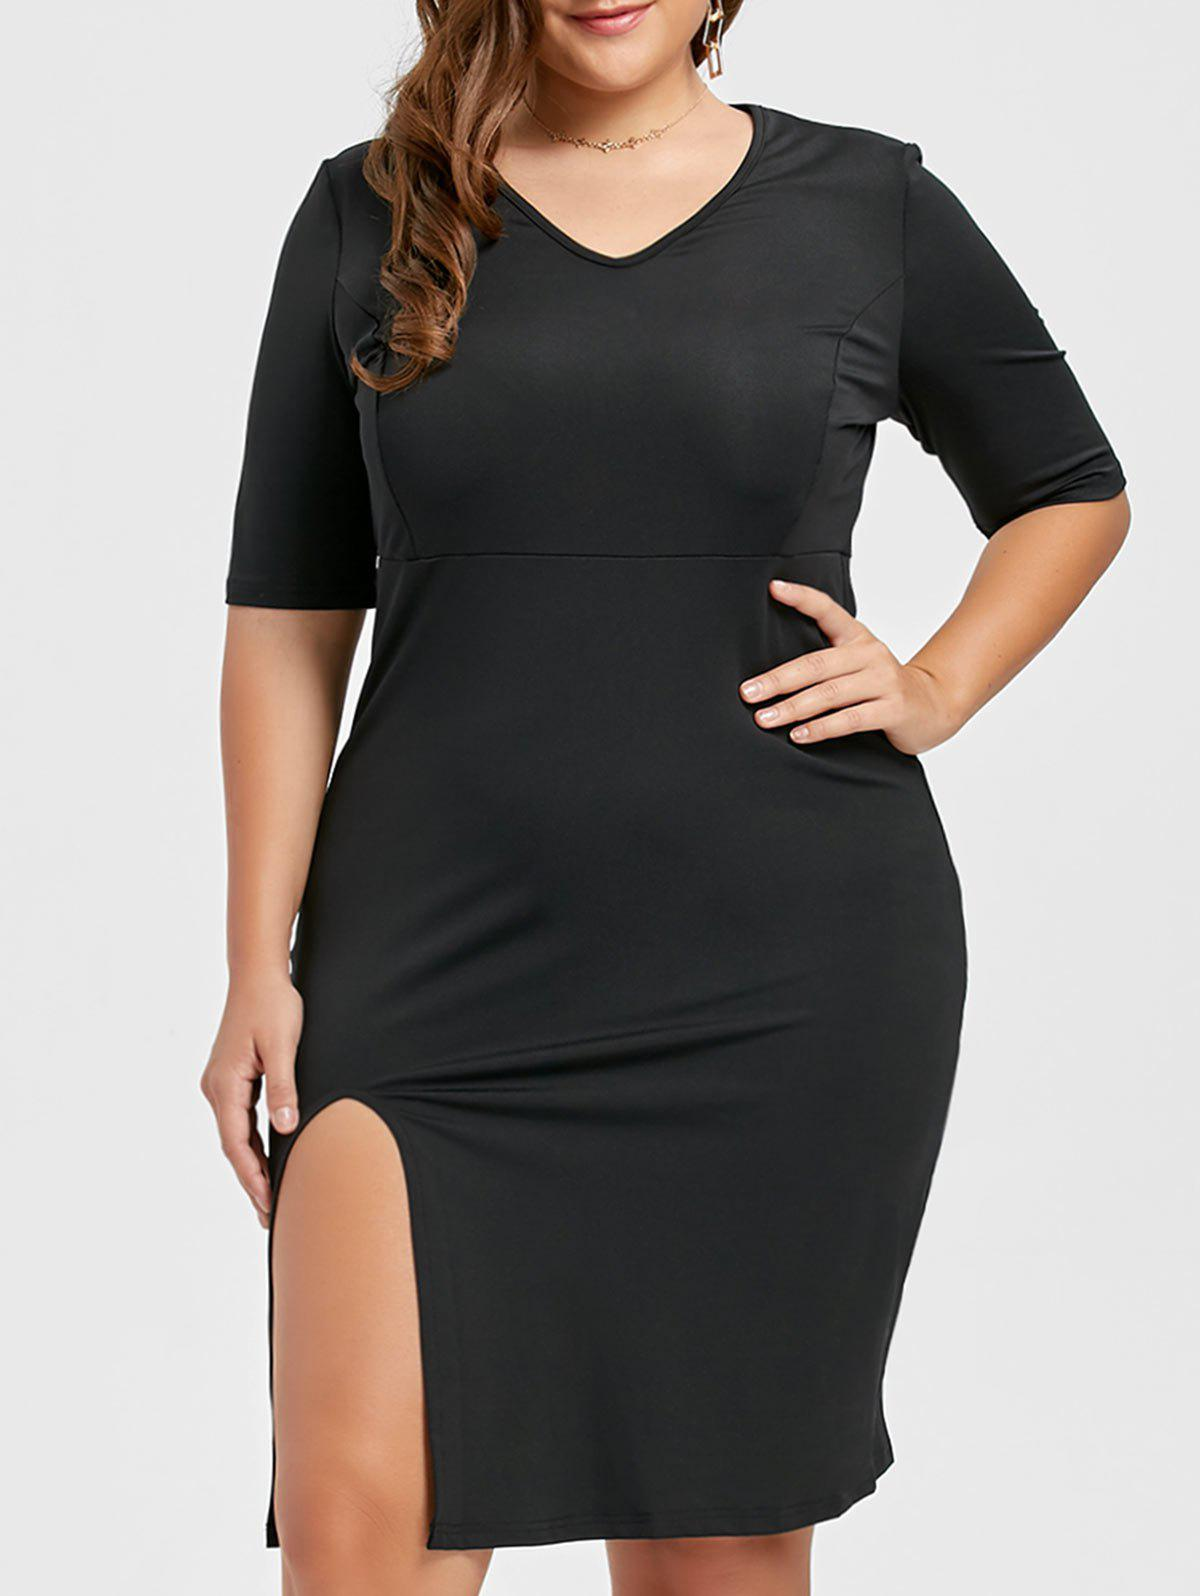 Hot V Neck Plus Size Sheath Tight Pencil Dress